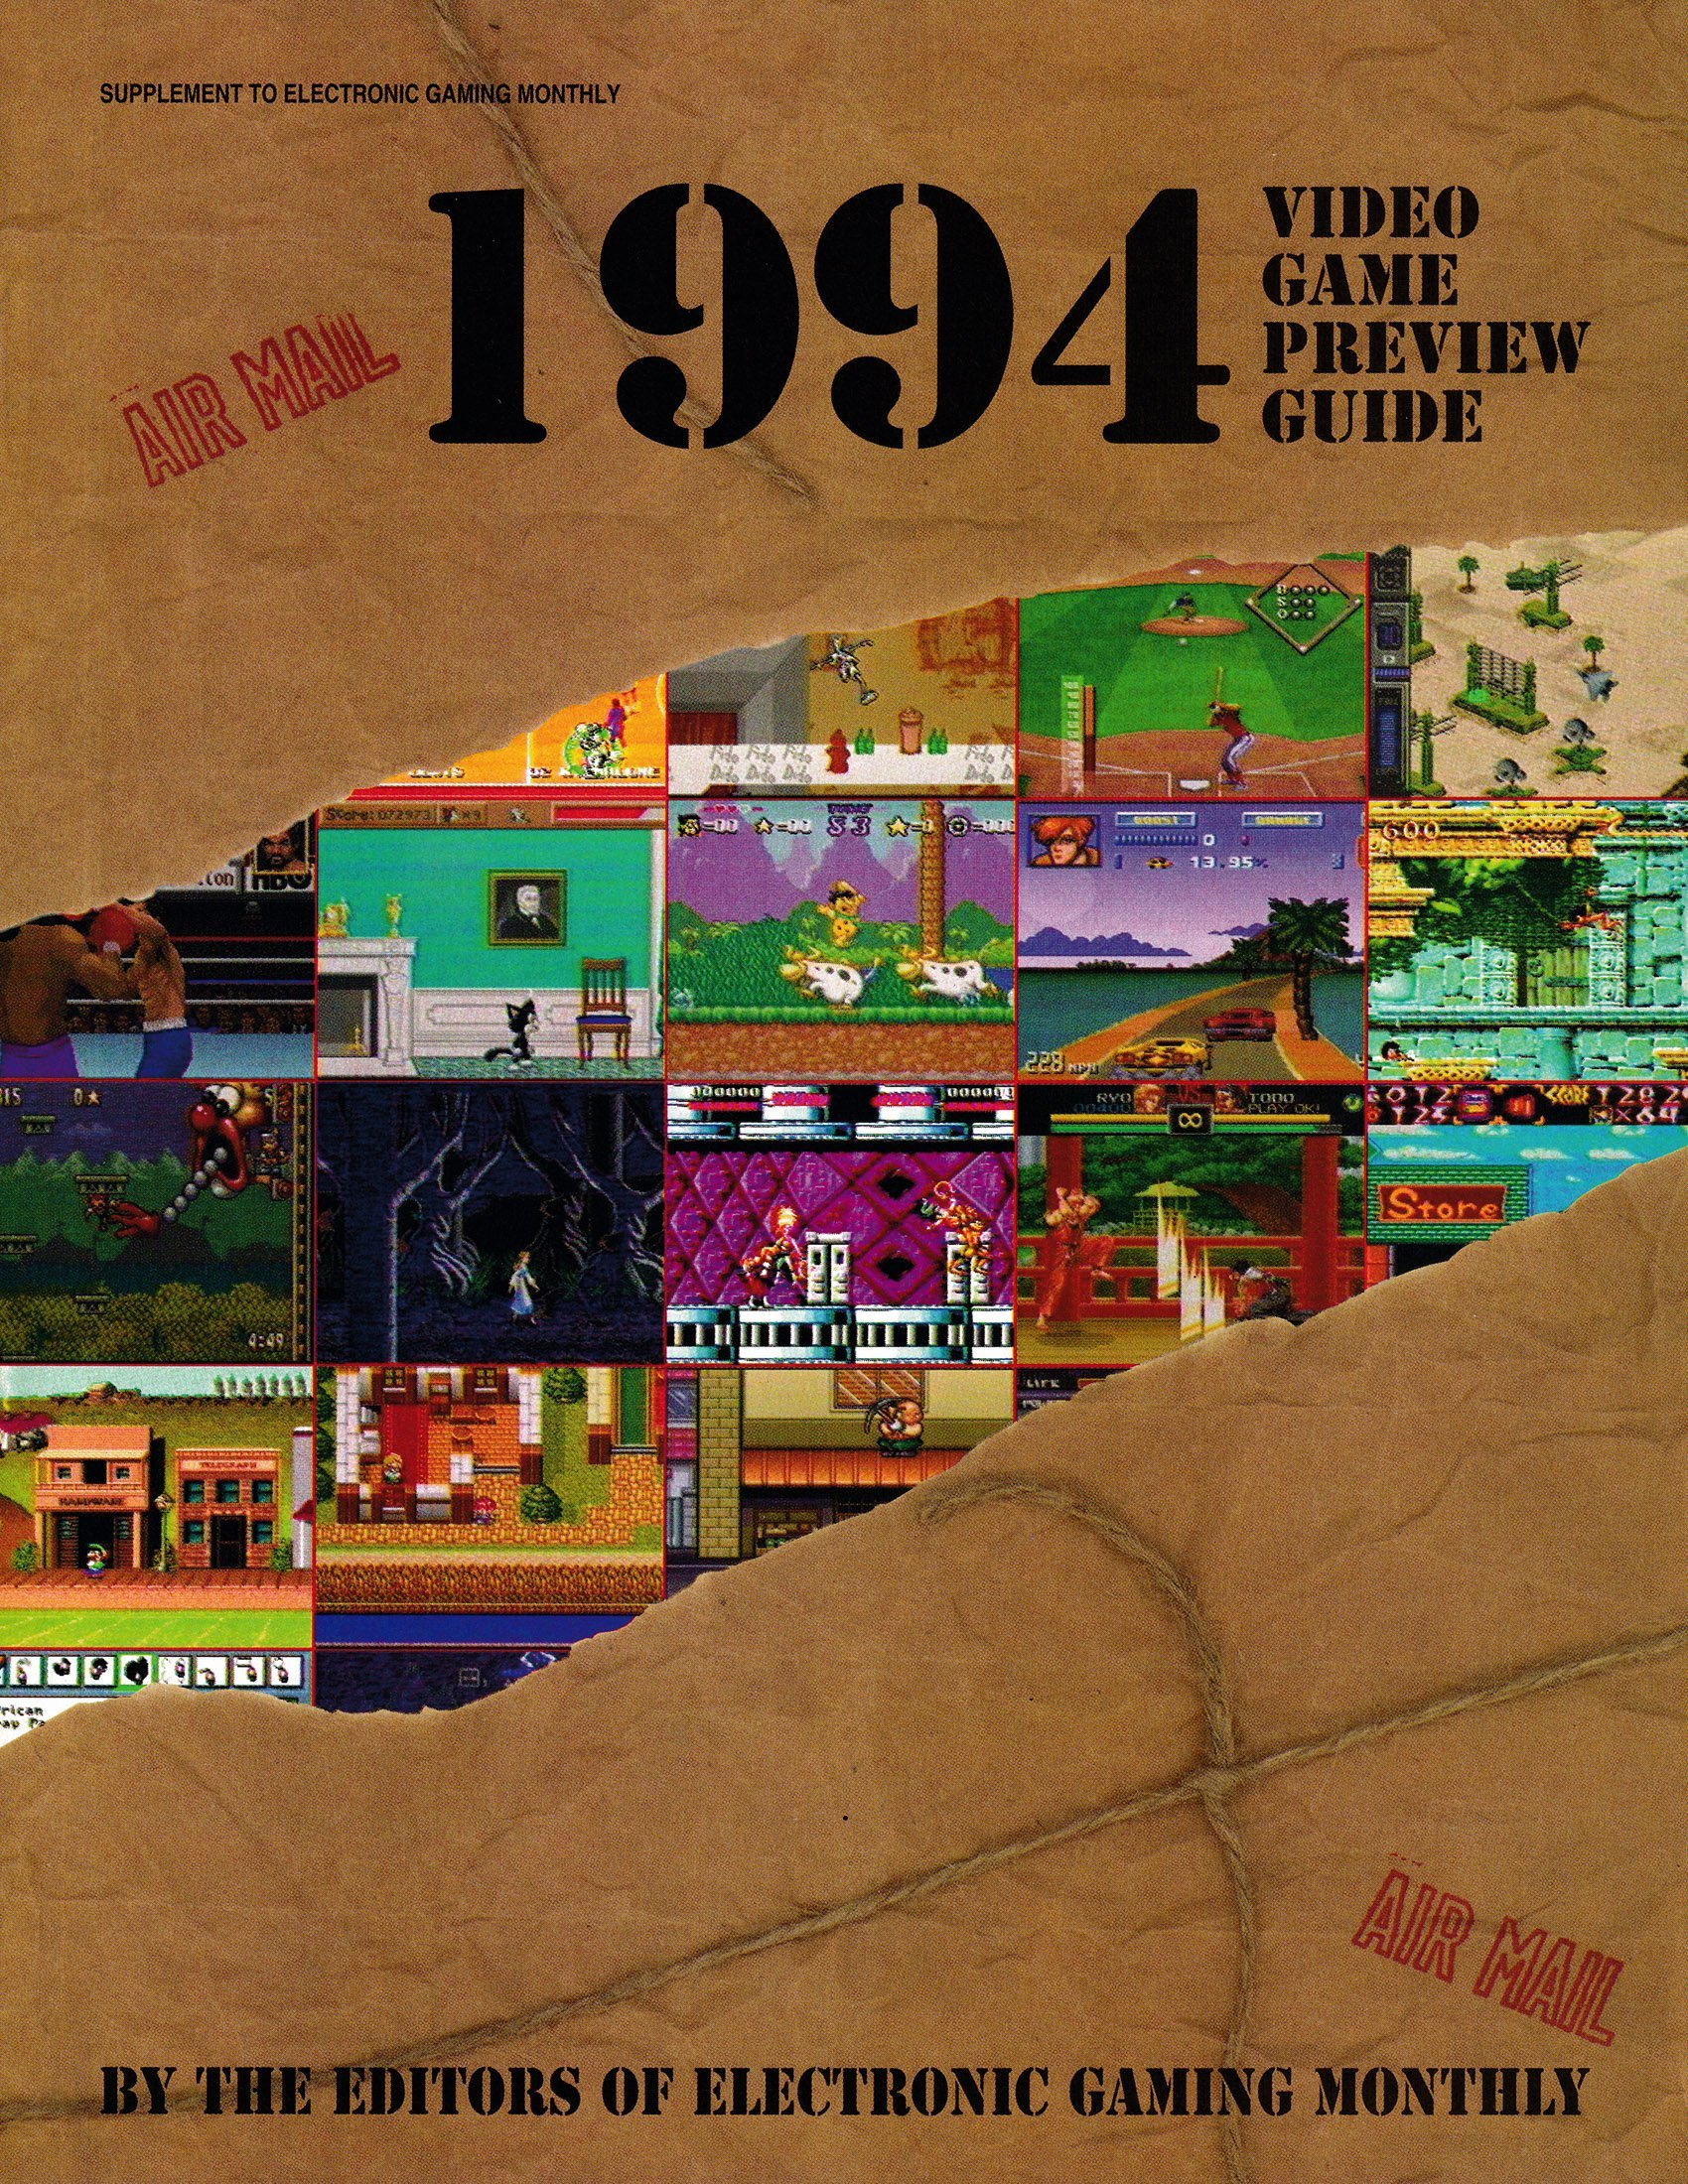 Video Game Preview Guide (1994)